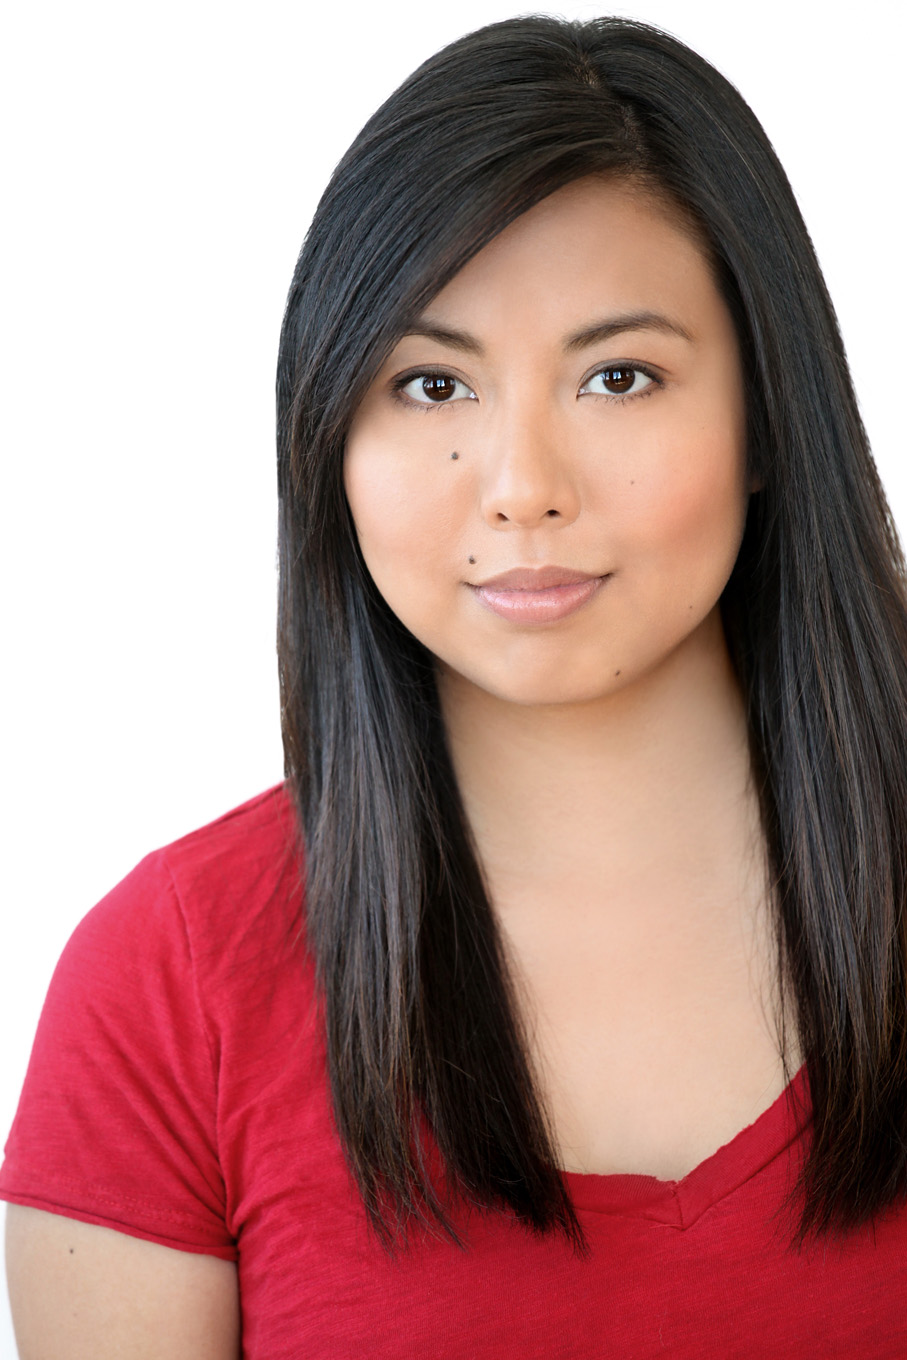 45: Rosie Tran – What Stand Up Comedy Can Teach Every Solopreneur